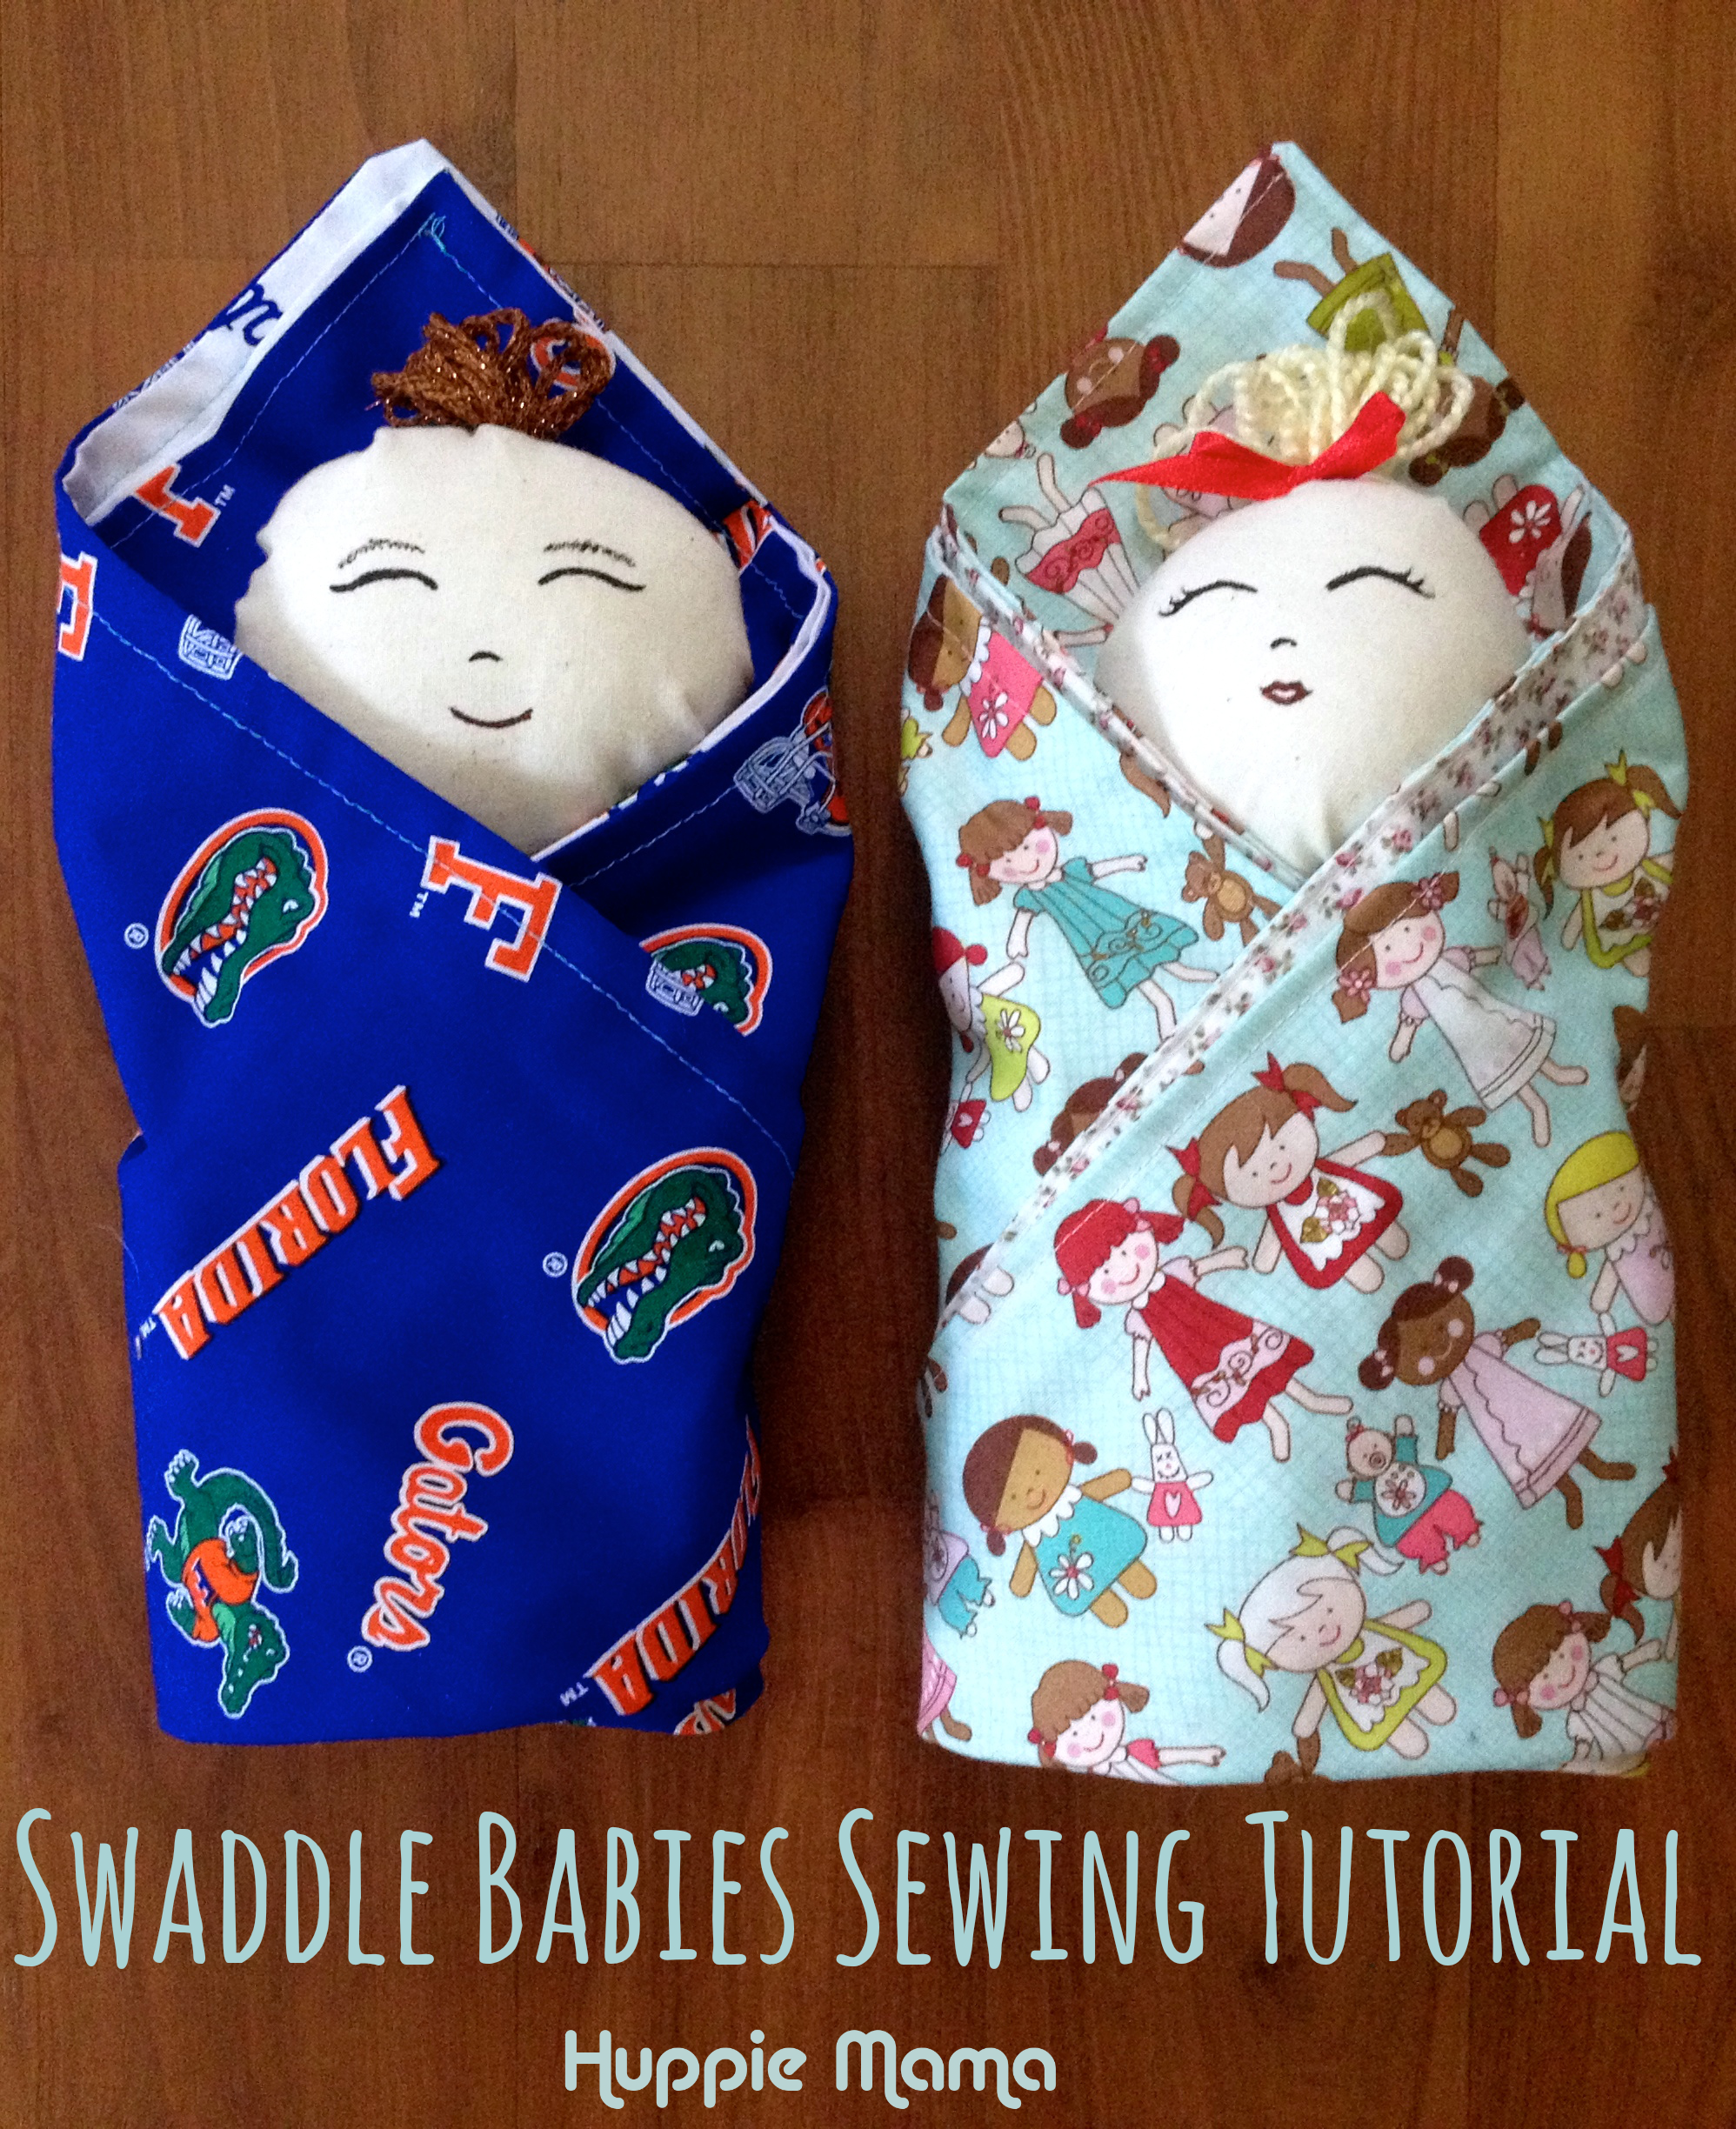 Swaddle Babies Sewing Tutorial